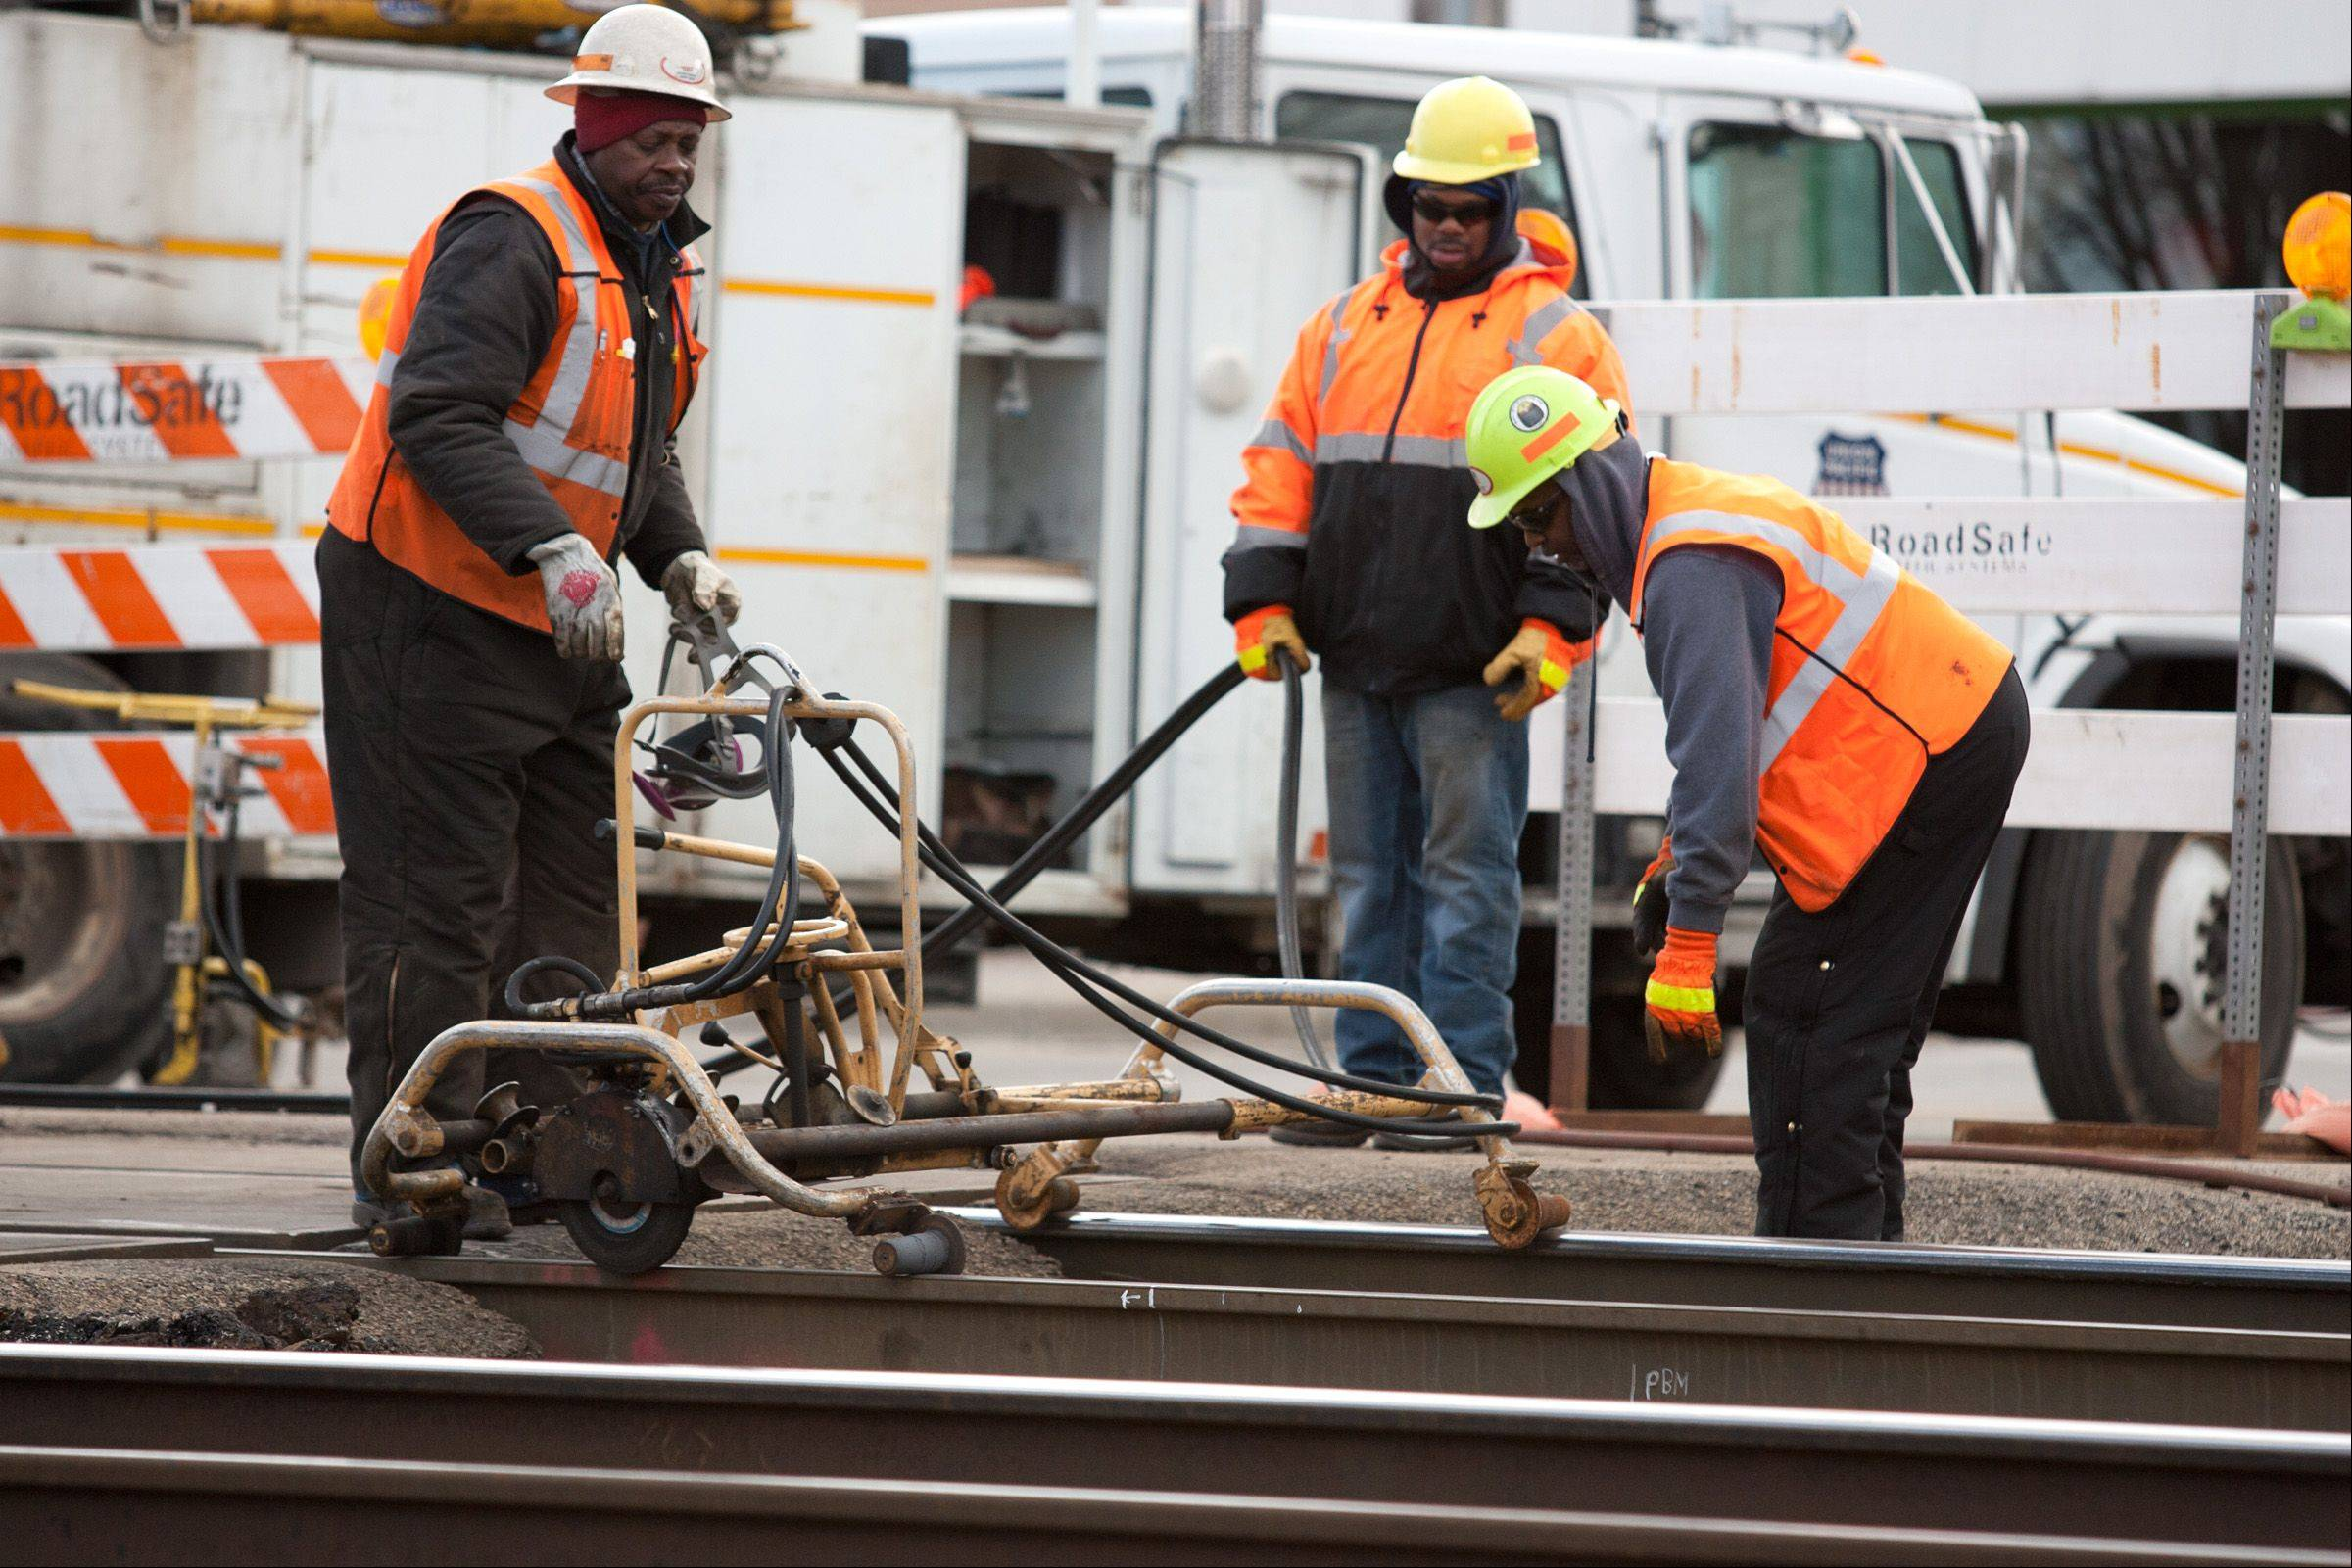 Union Pacific railroad workers are making repairs this week at the Main Street crossing in downtown Glen Ellyn. The work is expected to be complete Friday.